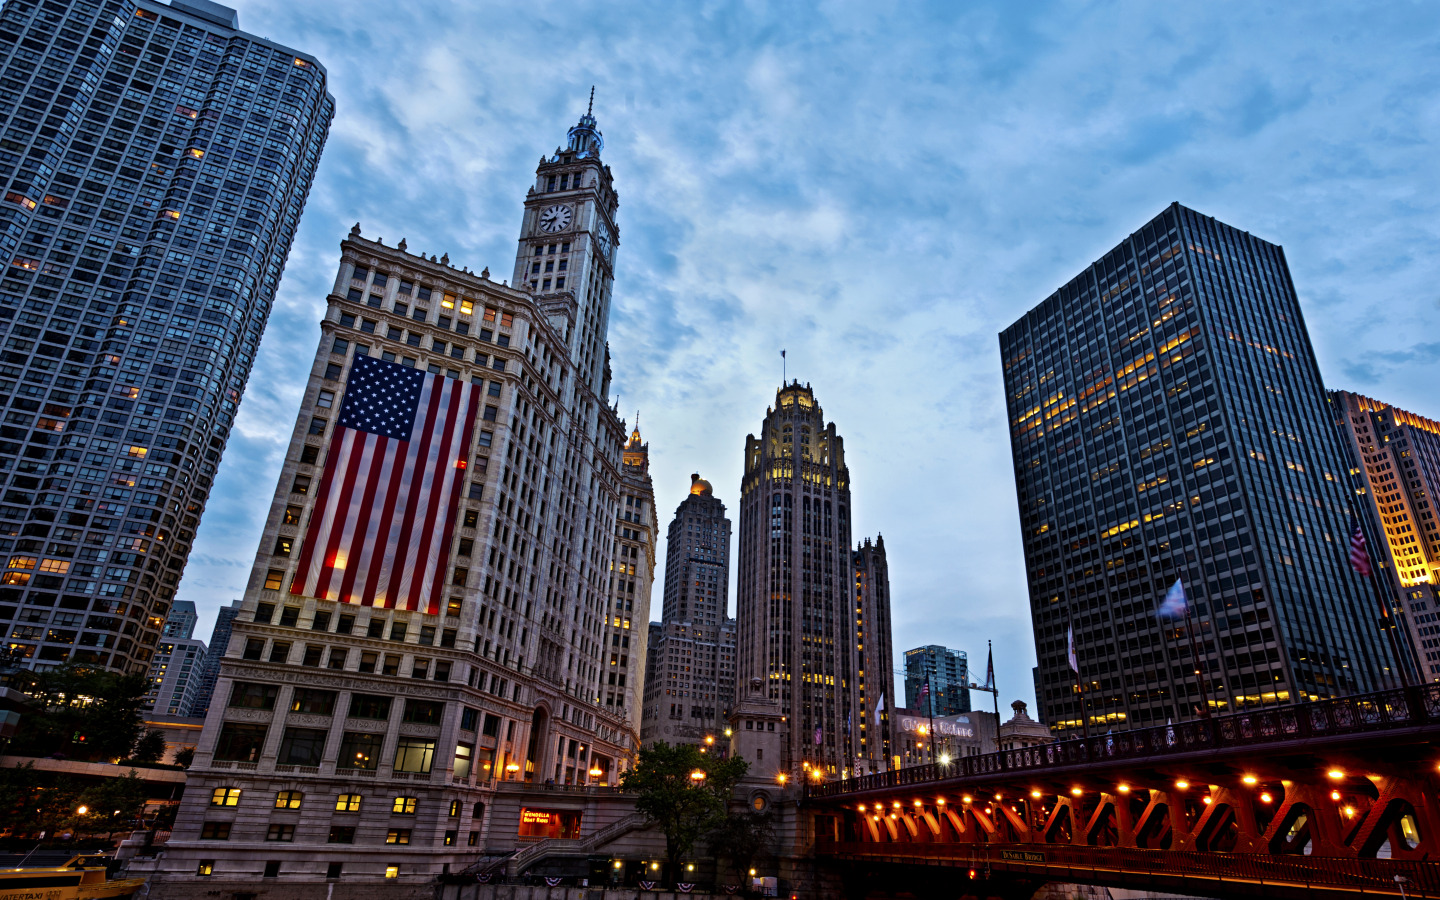 American Flag in Chicago Illinois United States widescreen 1440x900